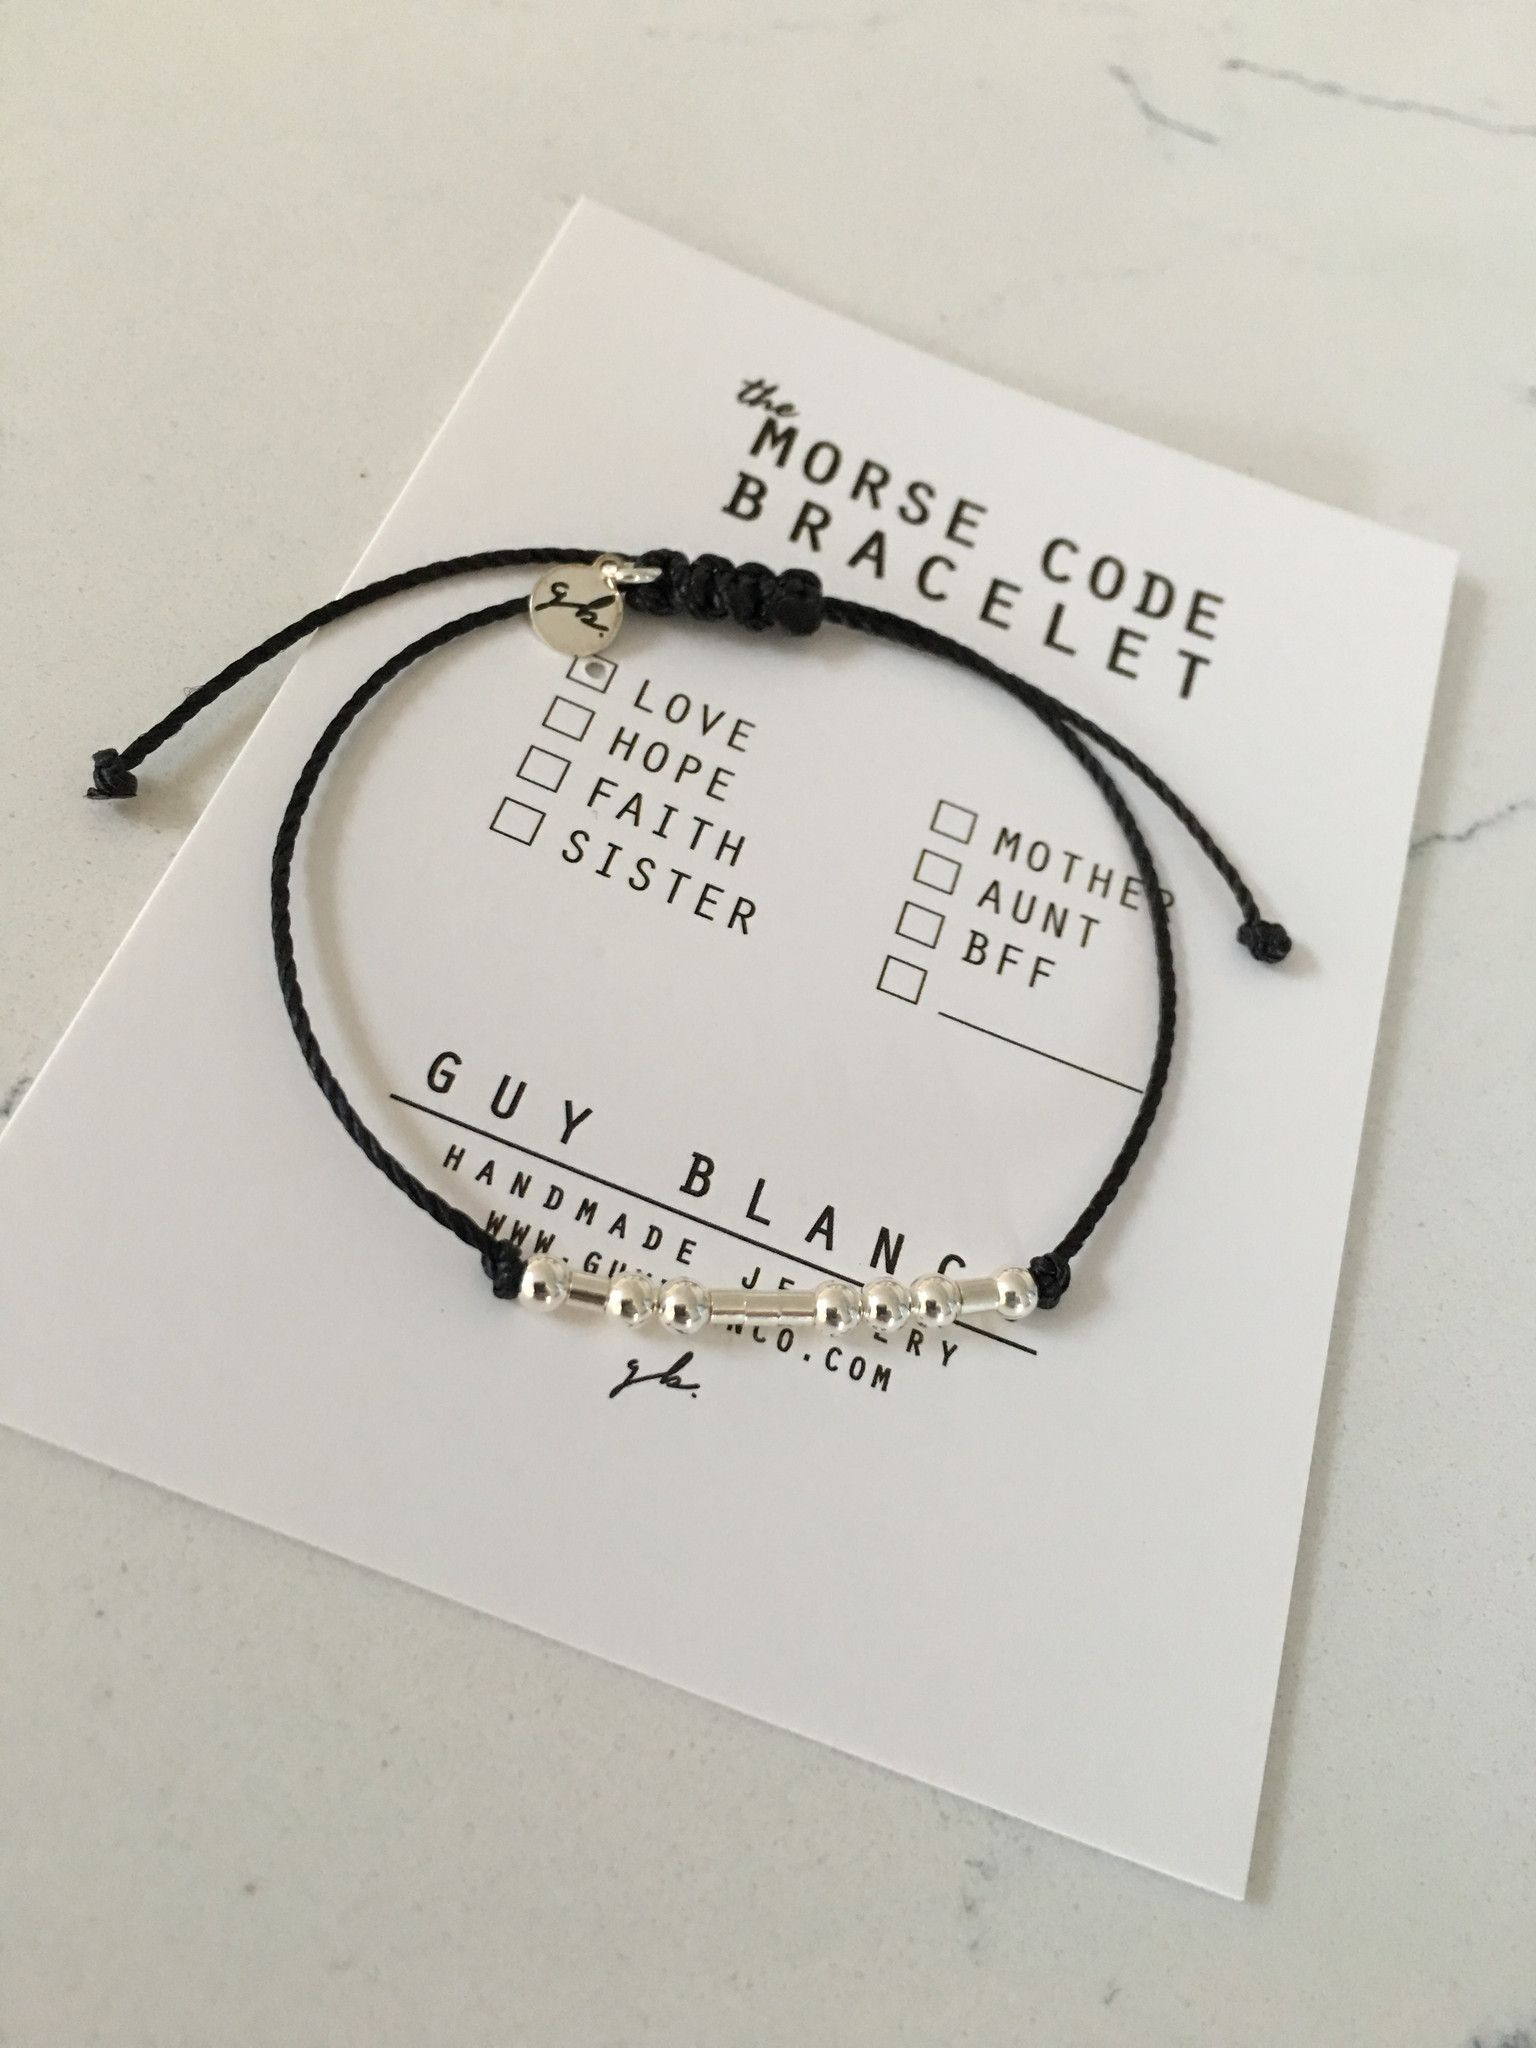 LOVE morse code bracelet on an adjustable premium nylon cord. Available in: GOLD- with high quality 3mm 14k gold filled beads and 2mm 14k gold filled tube beads SILVER-with 3mm .925 sterling silver pl